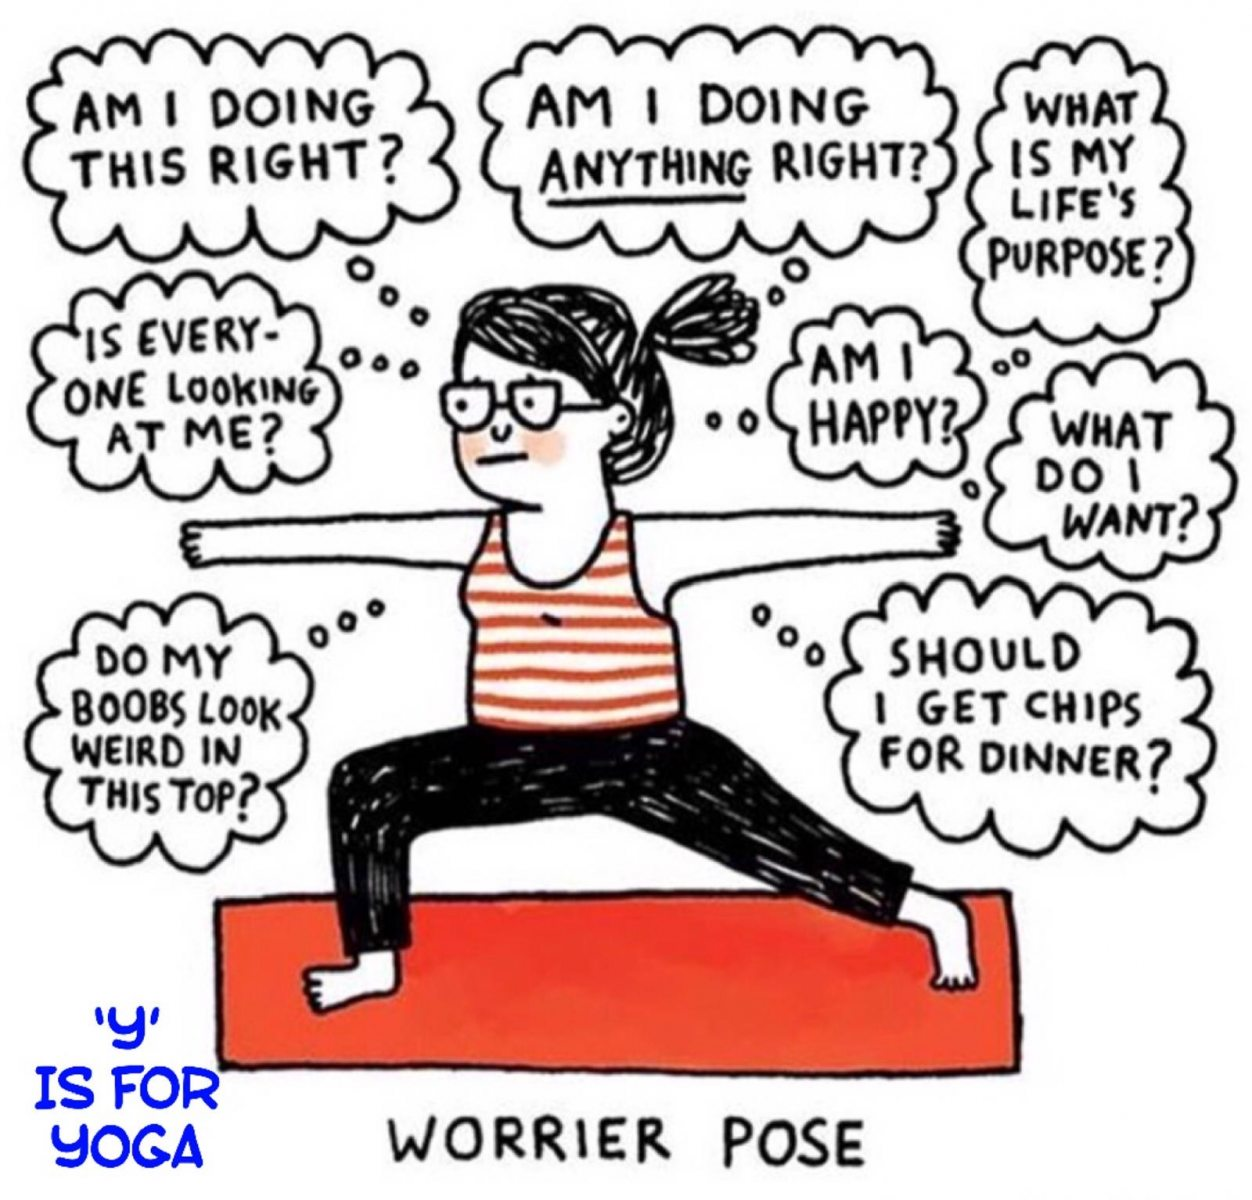 Yoga-Worrier-Pose-Christine-Burbidge